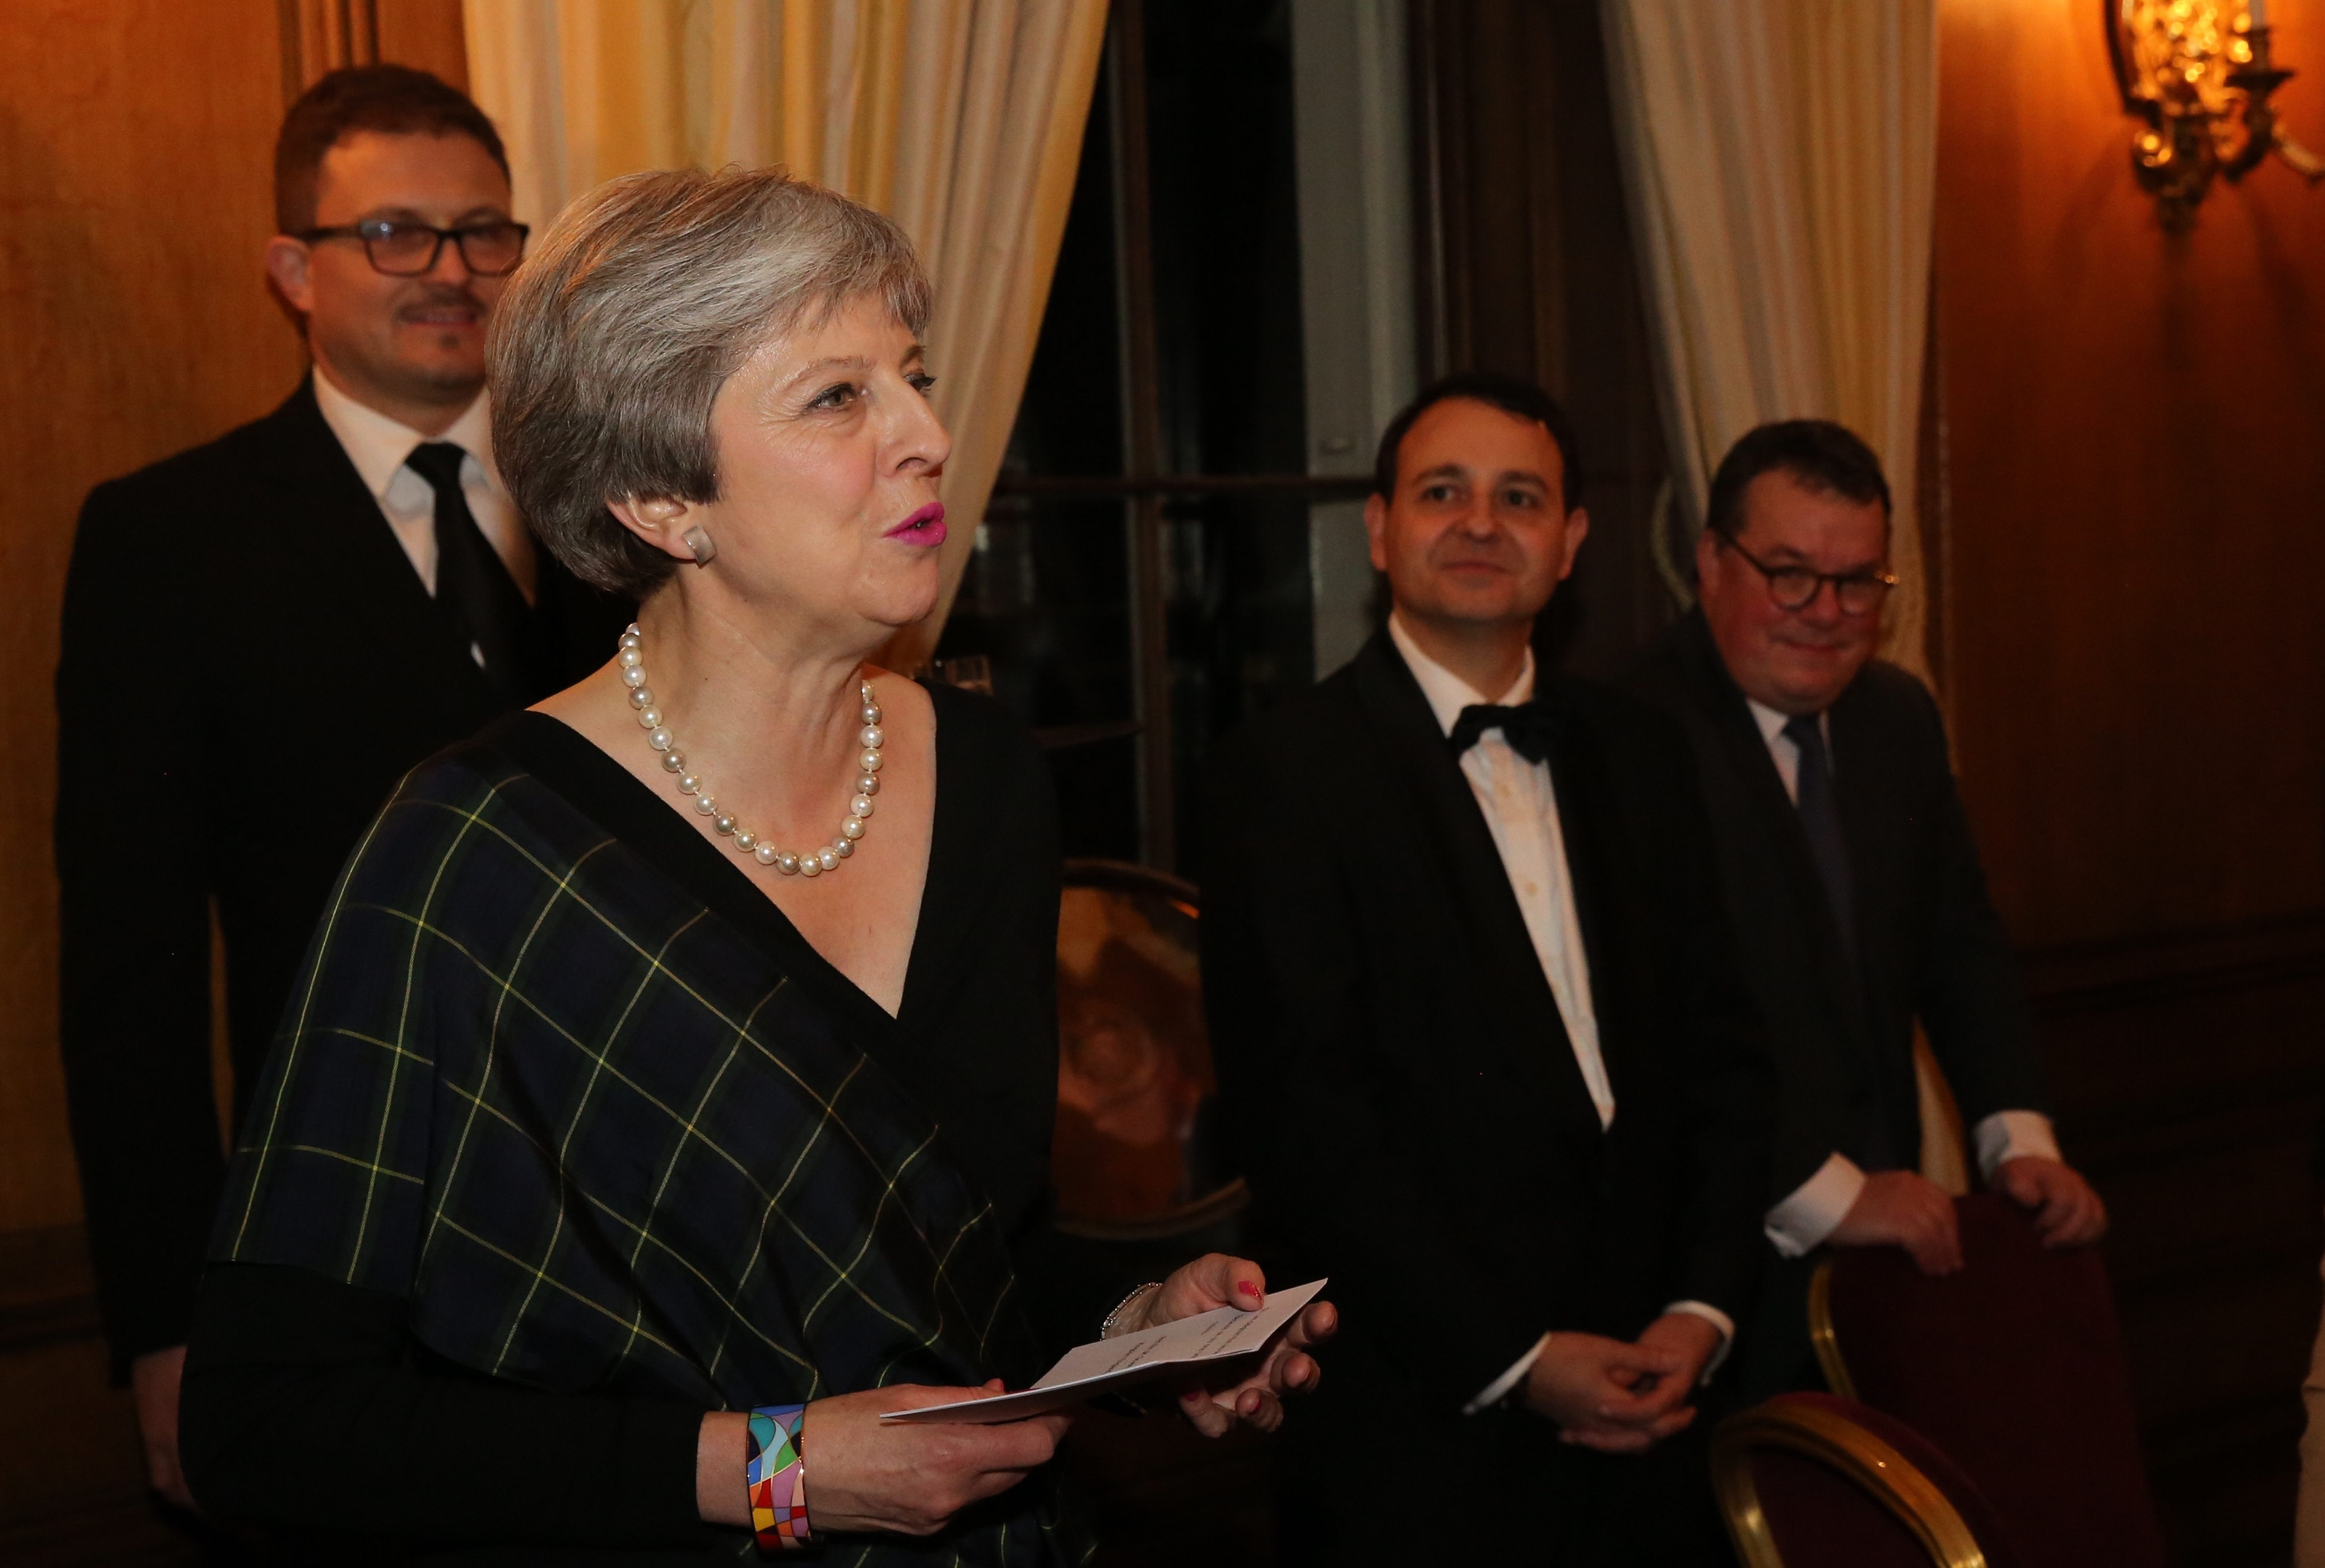 The Prime Minister giving the welcome to guests. with Alberto Costa and Keith Sceogh.